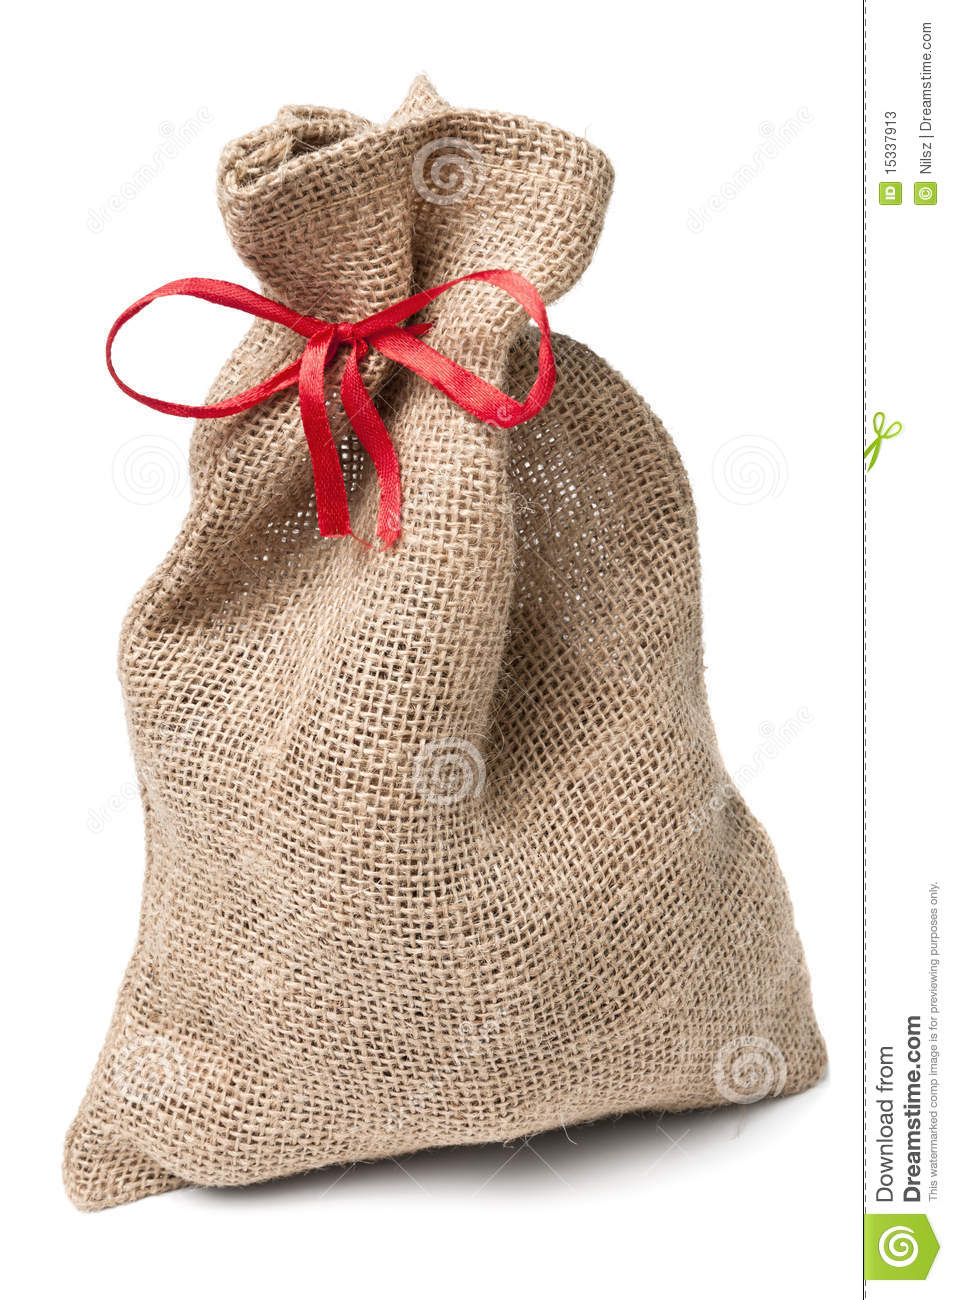 Jute Sack Present With Red Ribbon Stock Image Image Of